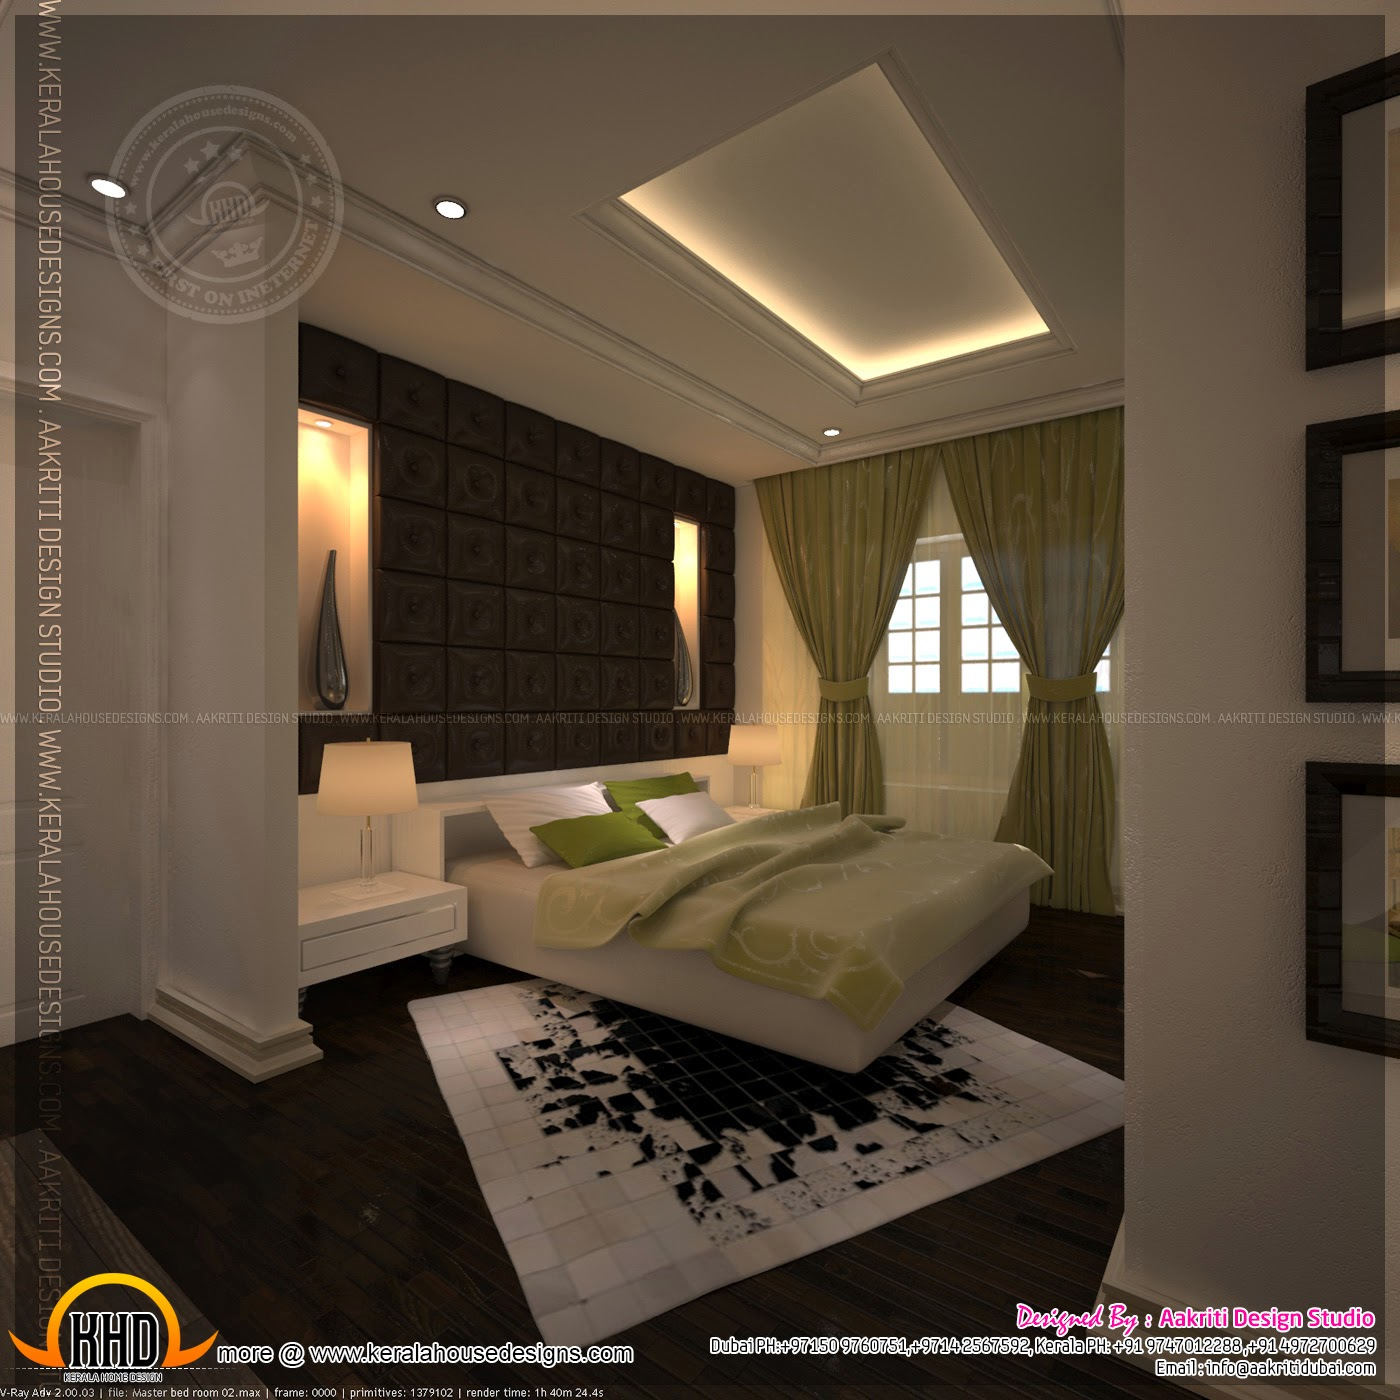 Master bedroom and bathroom interior design kerala home design and floor plans Simple bathroom design indian